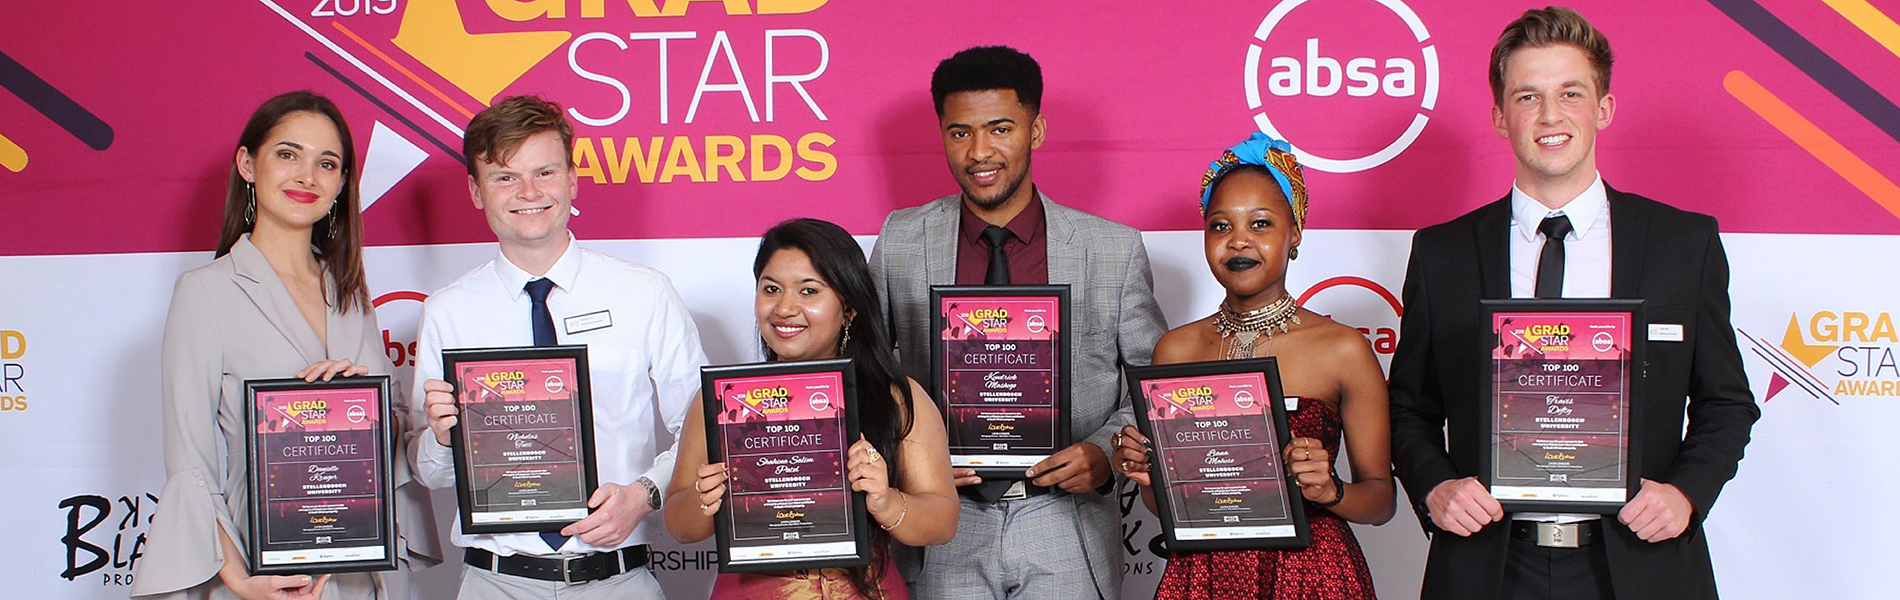 5 Maties Engineering students amongst GradStar Top 100 most employable students